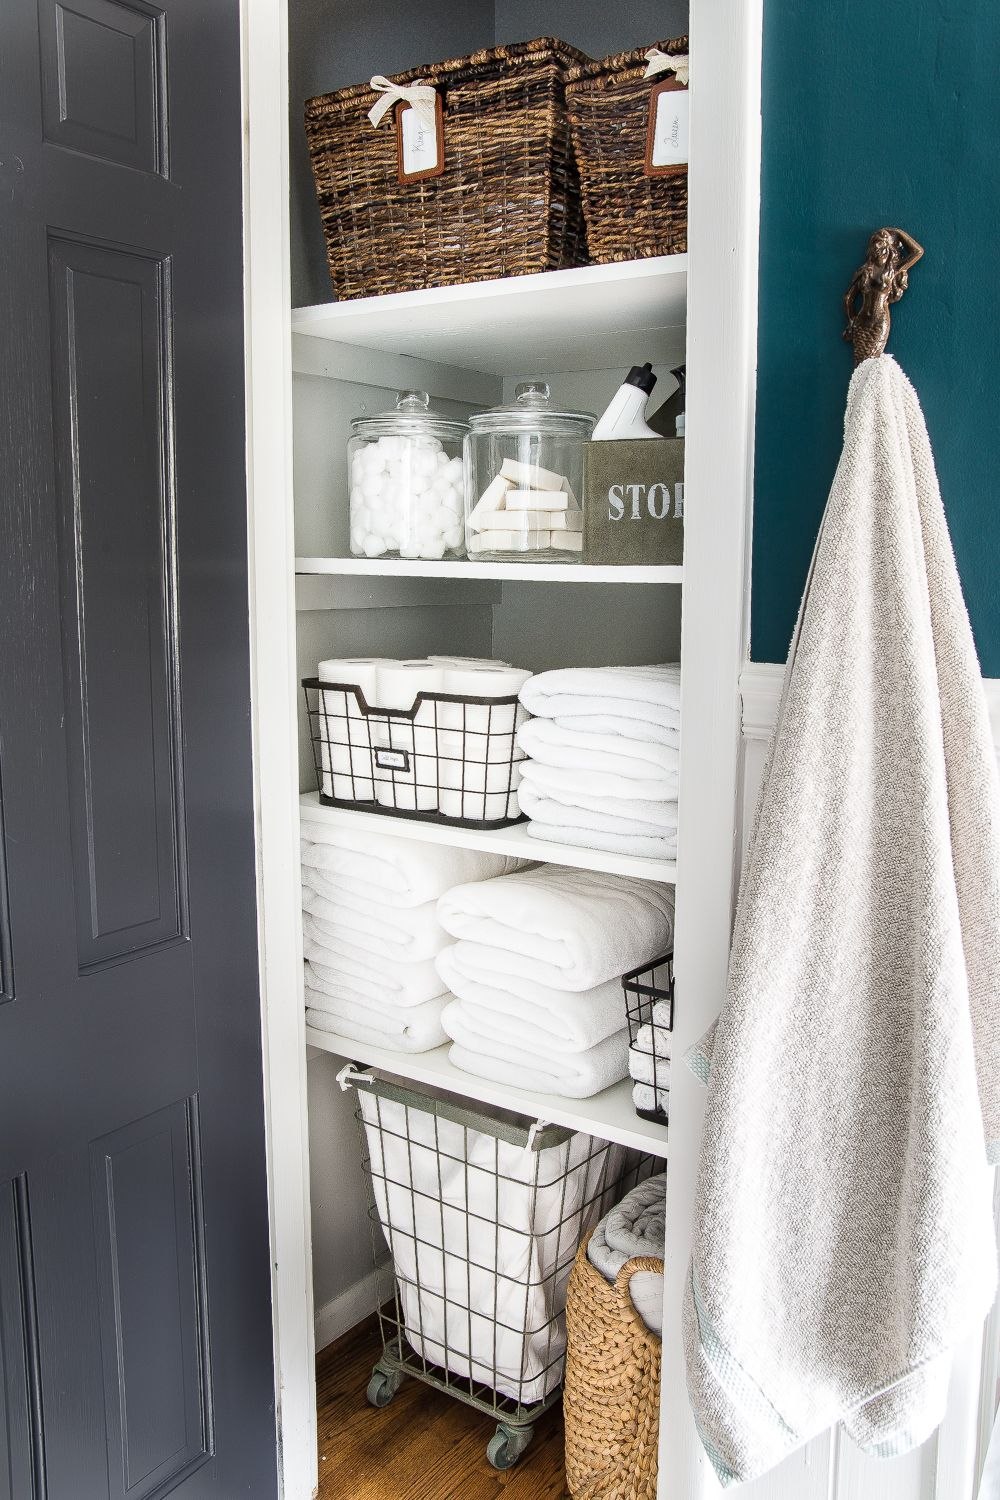 Linen Closet Organization Makeover | Blesserhouse.com   7 Tips For Perfect  Linen Closet Organization For The Best Ways To Sort Sheets, Keep Cleaning  ...